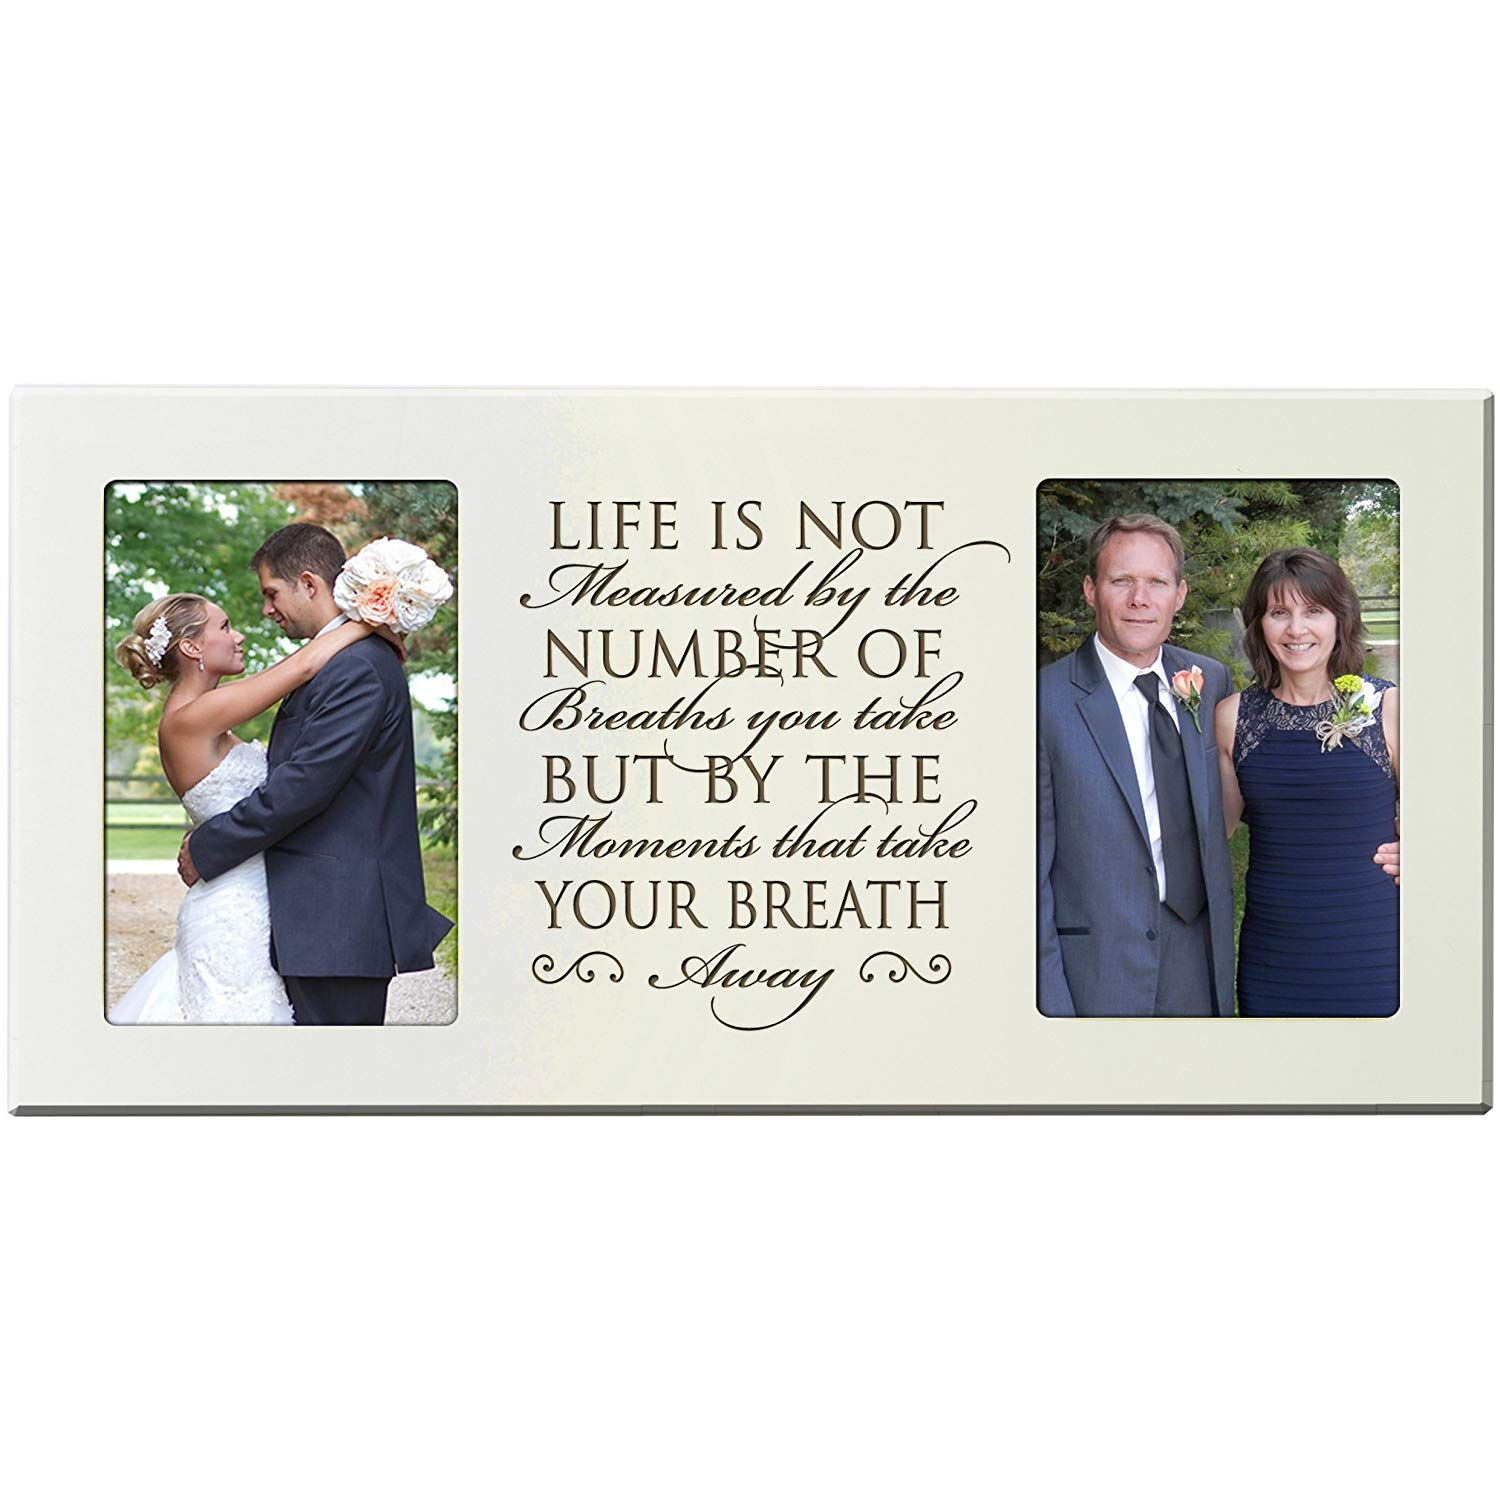 12th anniversary gifts for him under 75 wedding gifts